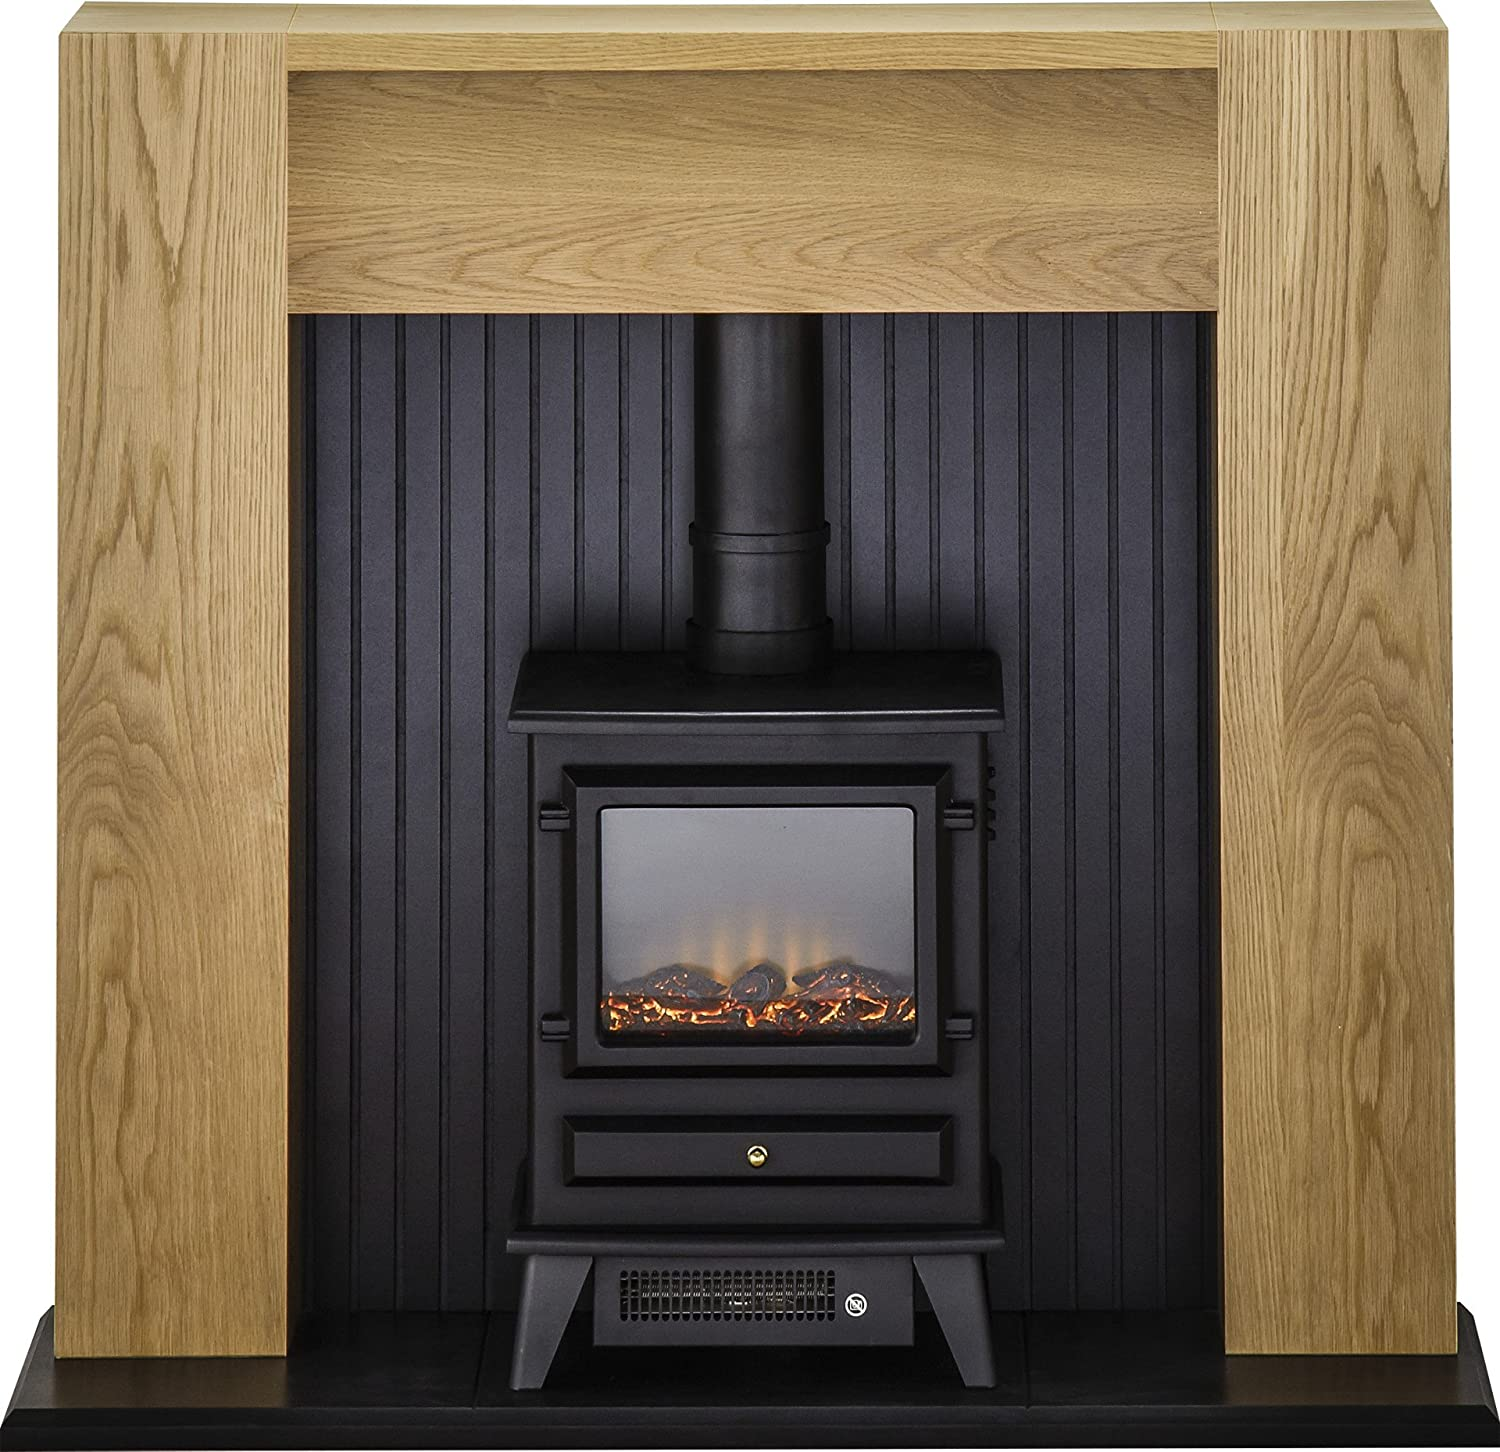 Adam Elleswood Stove Suite With Hudson Electric Stove In Black